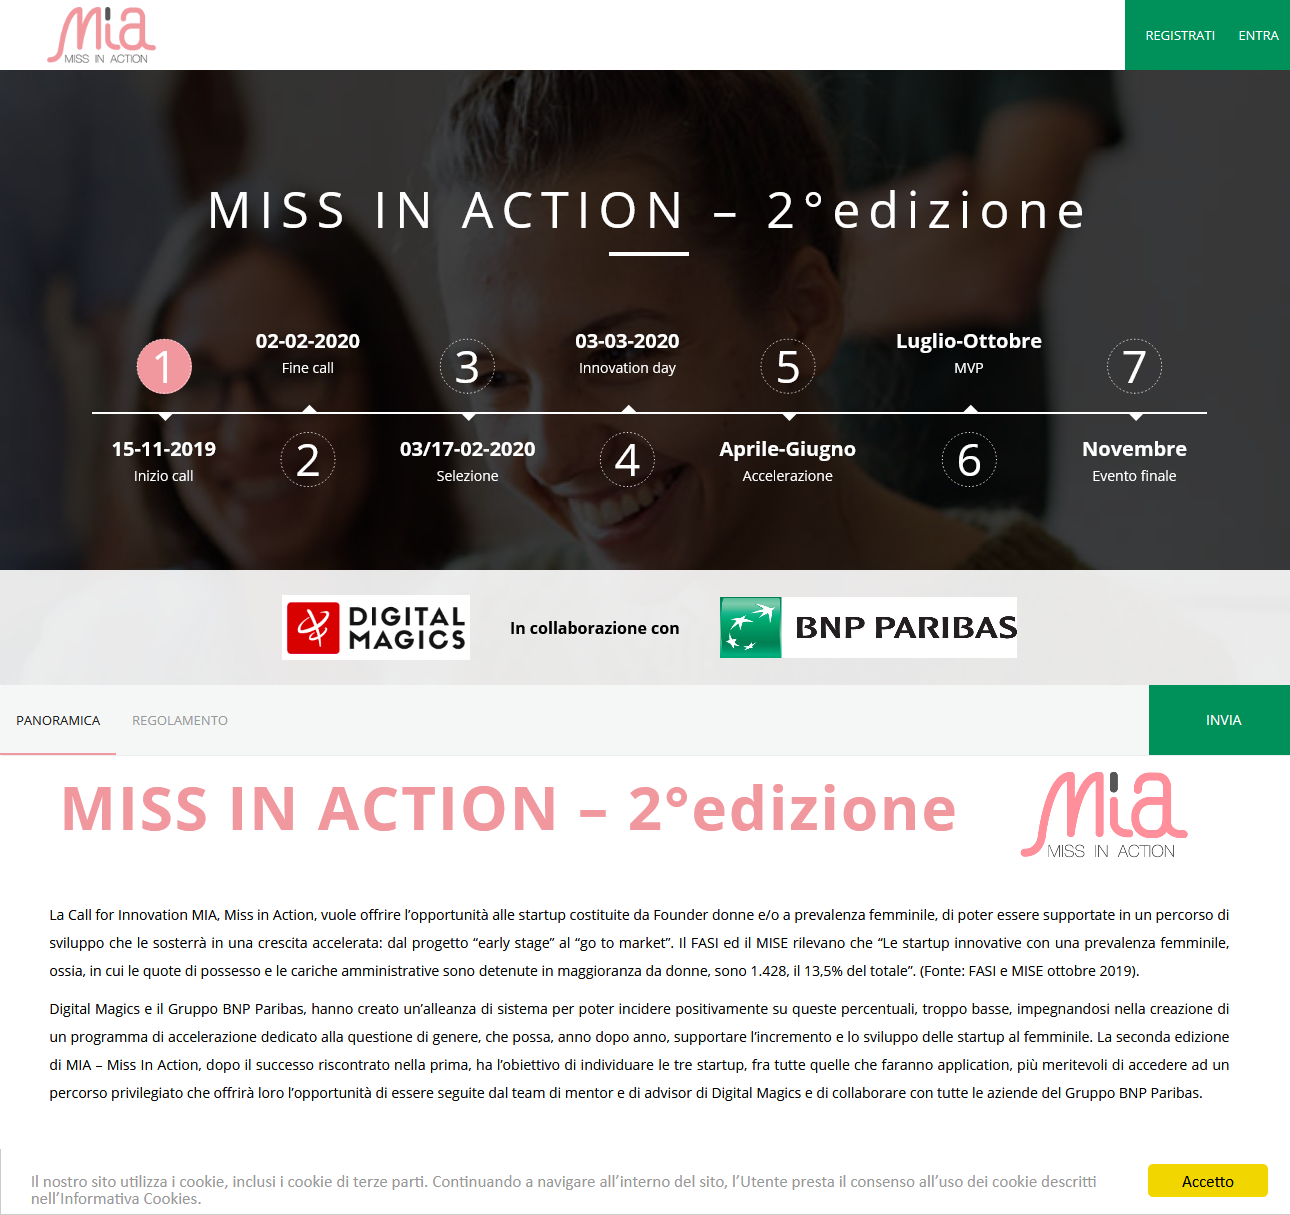 MISS IN ACTION – 2°edizione